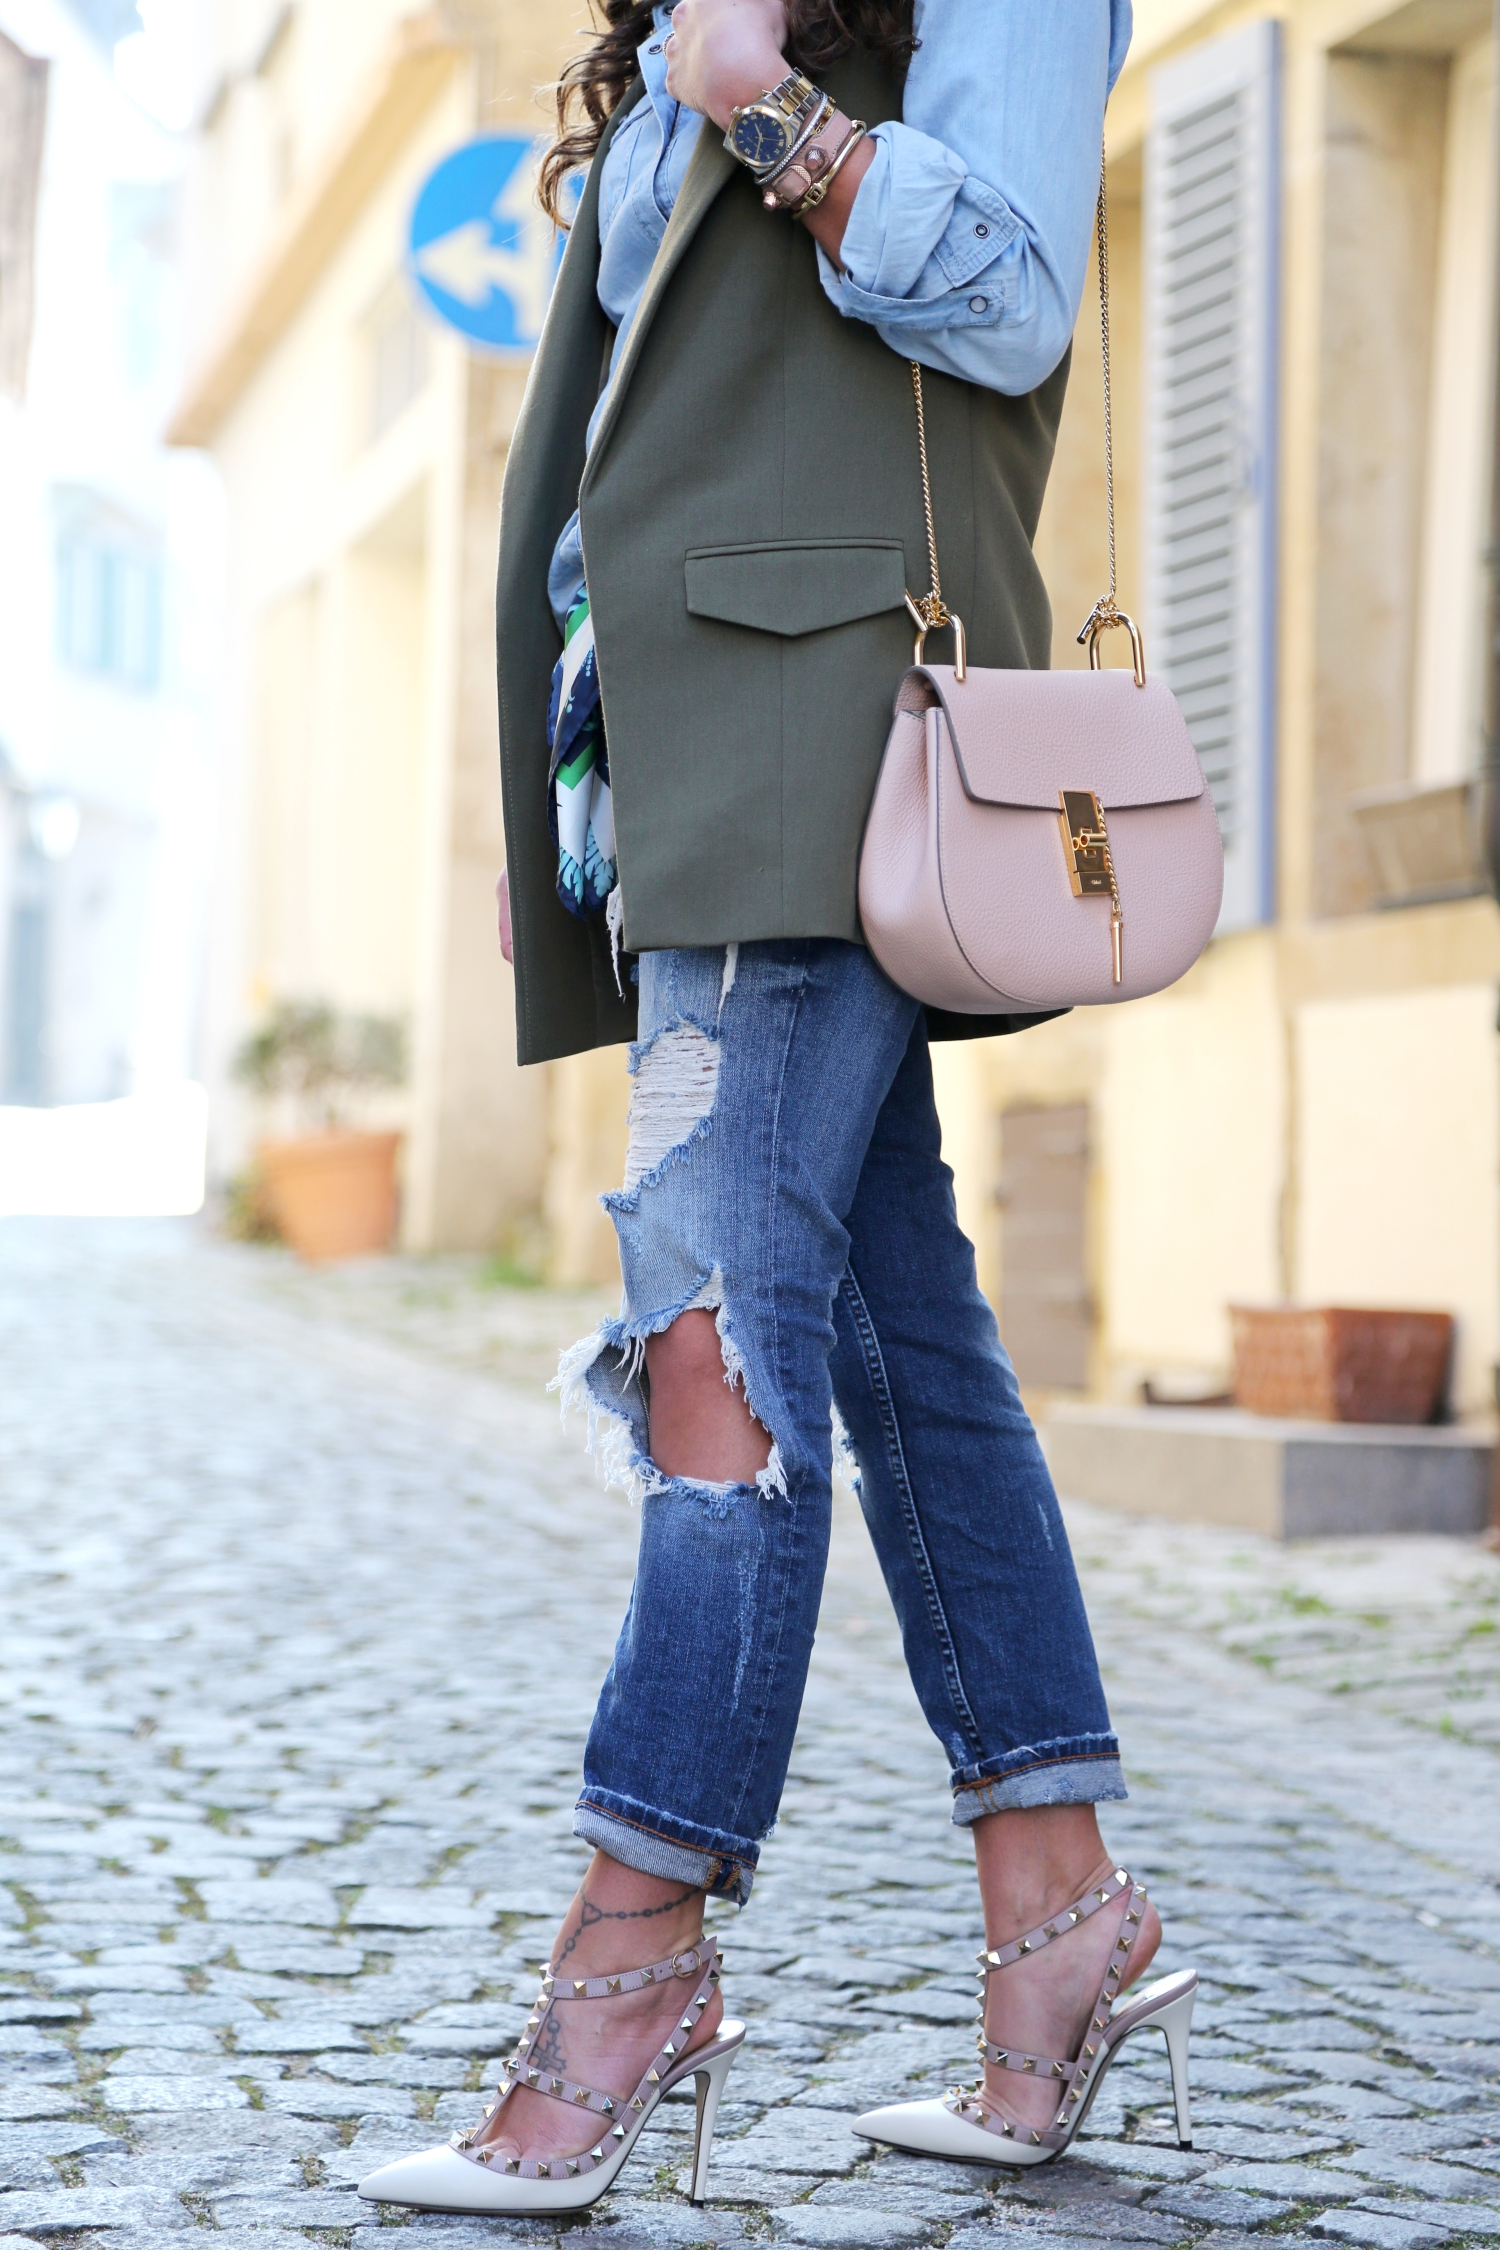 outfit-details-fashionhippieloves-spring-look-2016-trend-style-denim